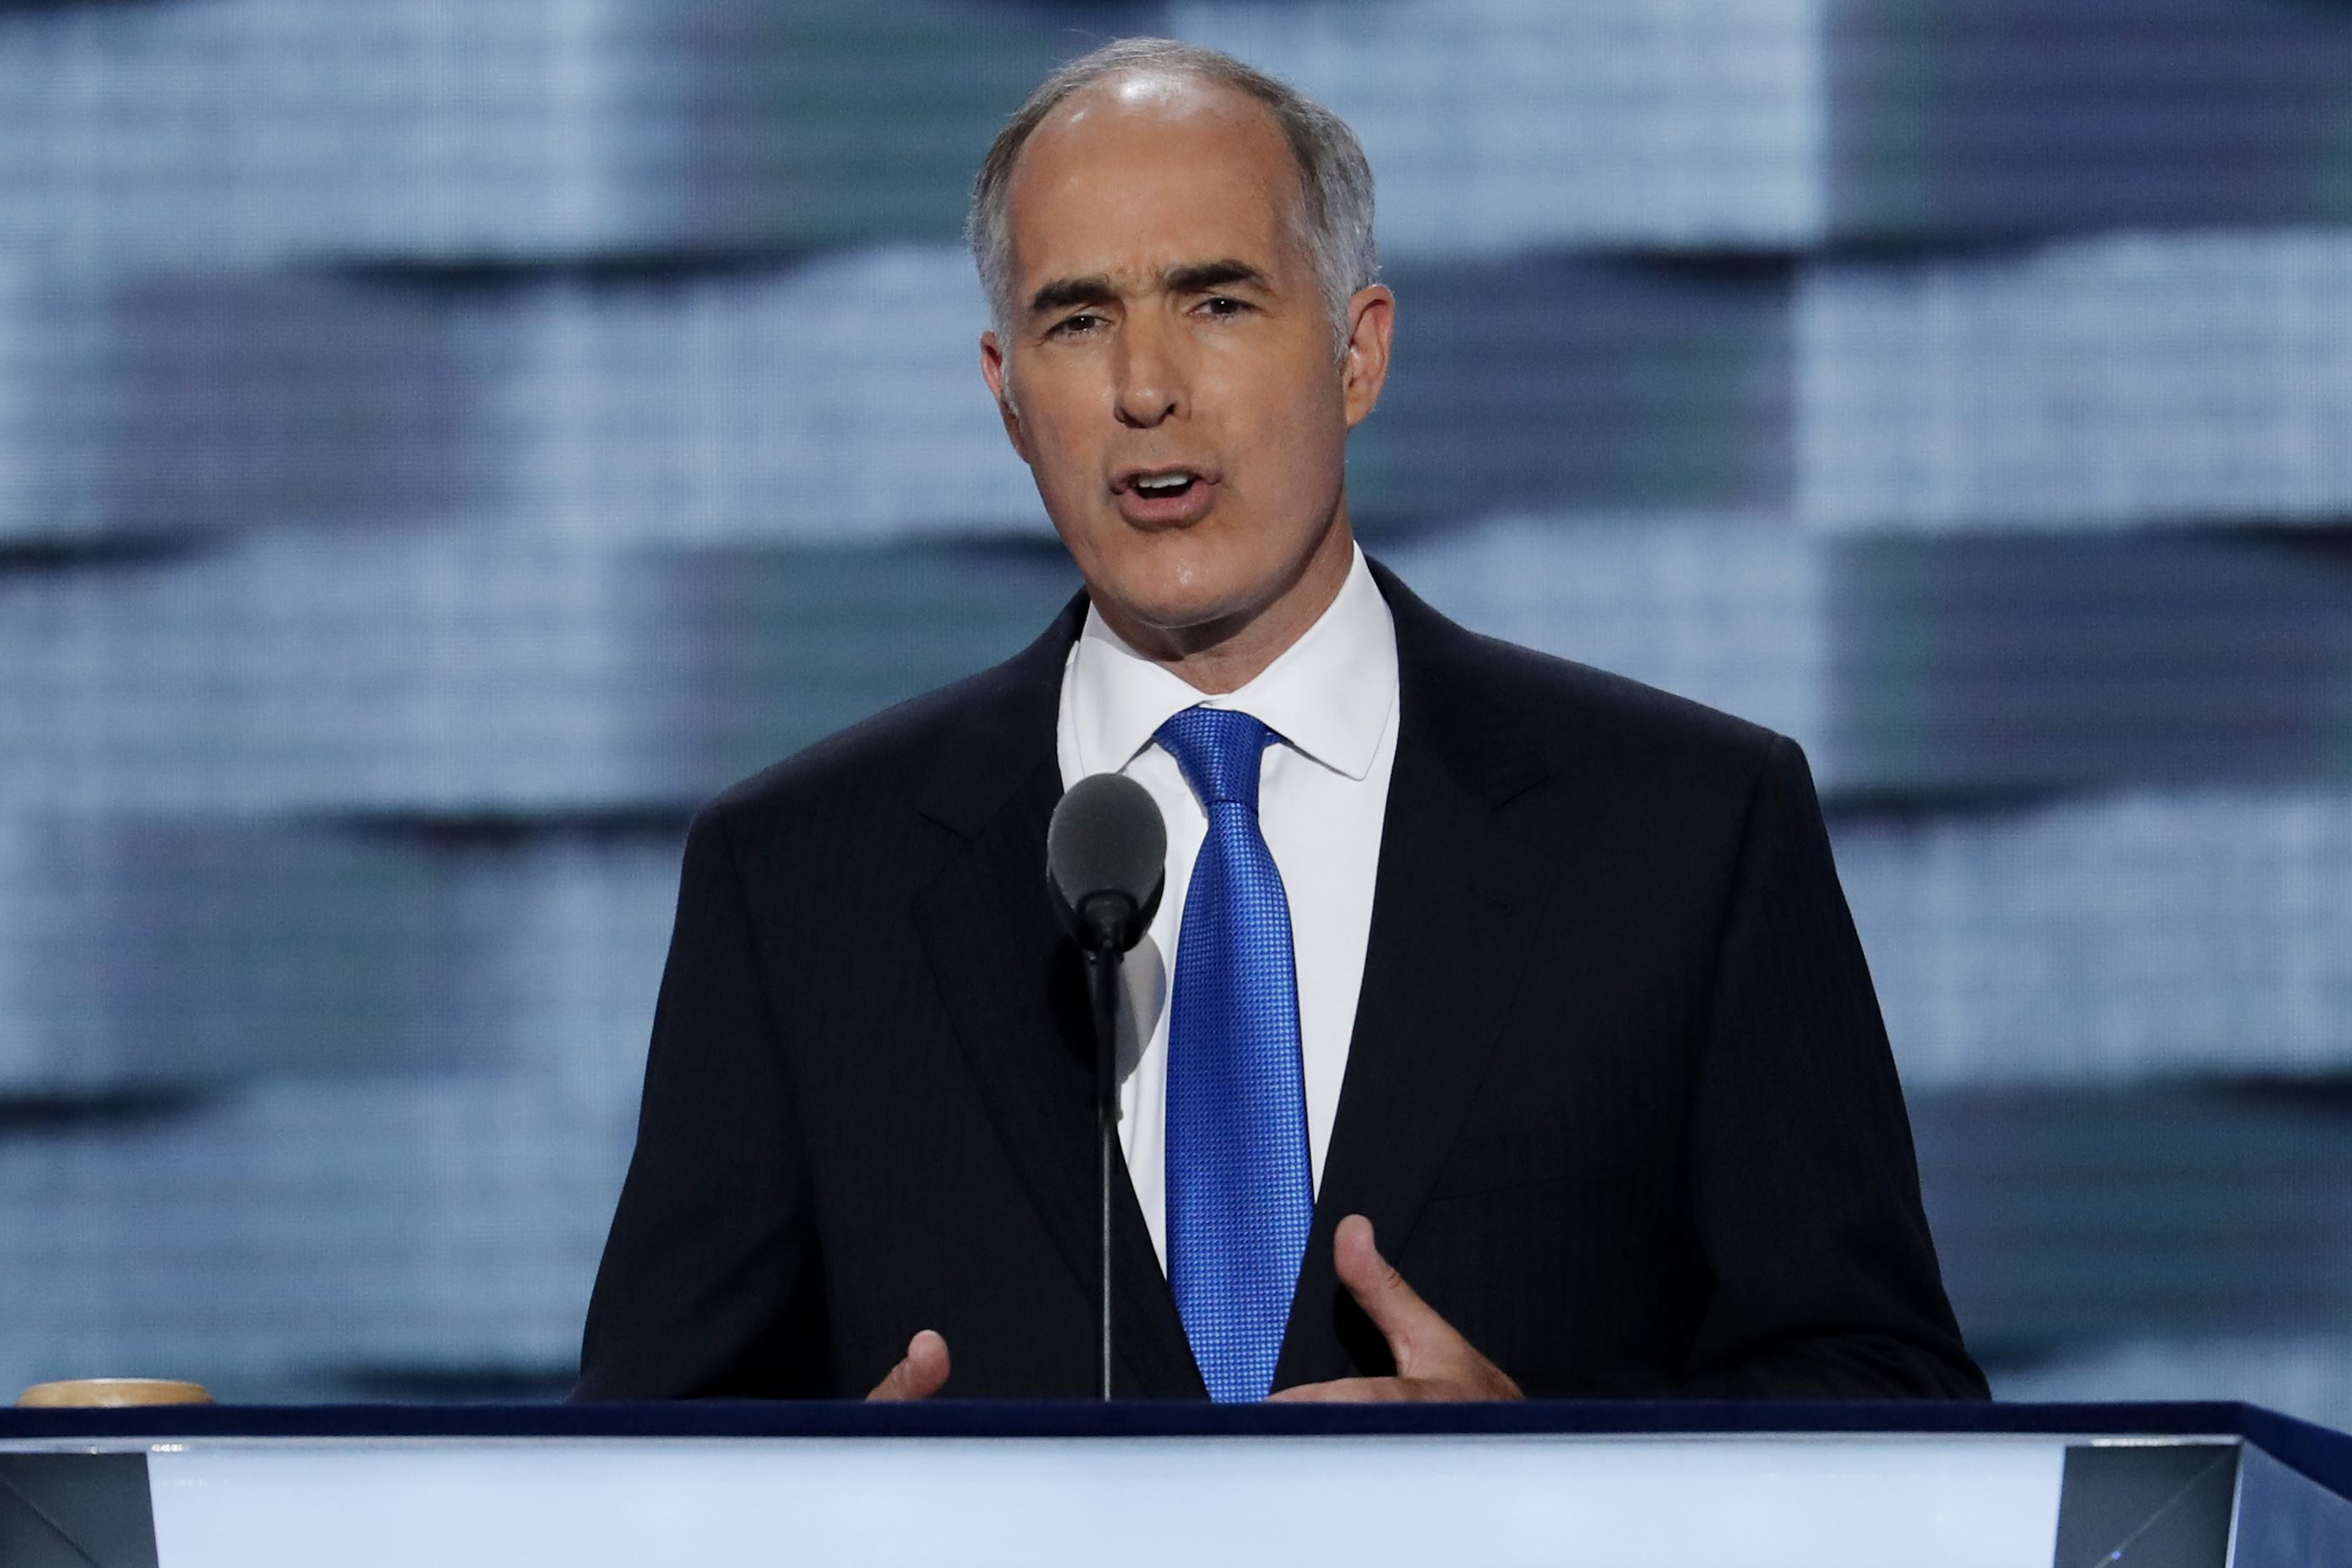 DEM 2016 Convention Sen. Bob Casey spoke in July on the first day of the Democratic National Convention in Philadelphia.